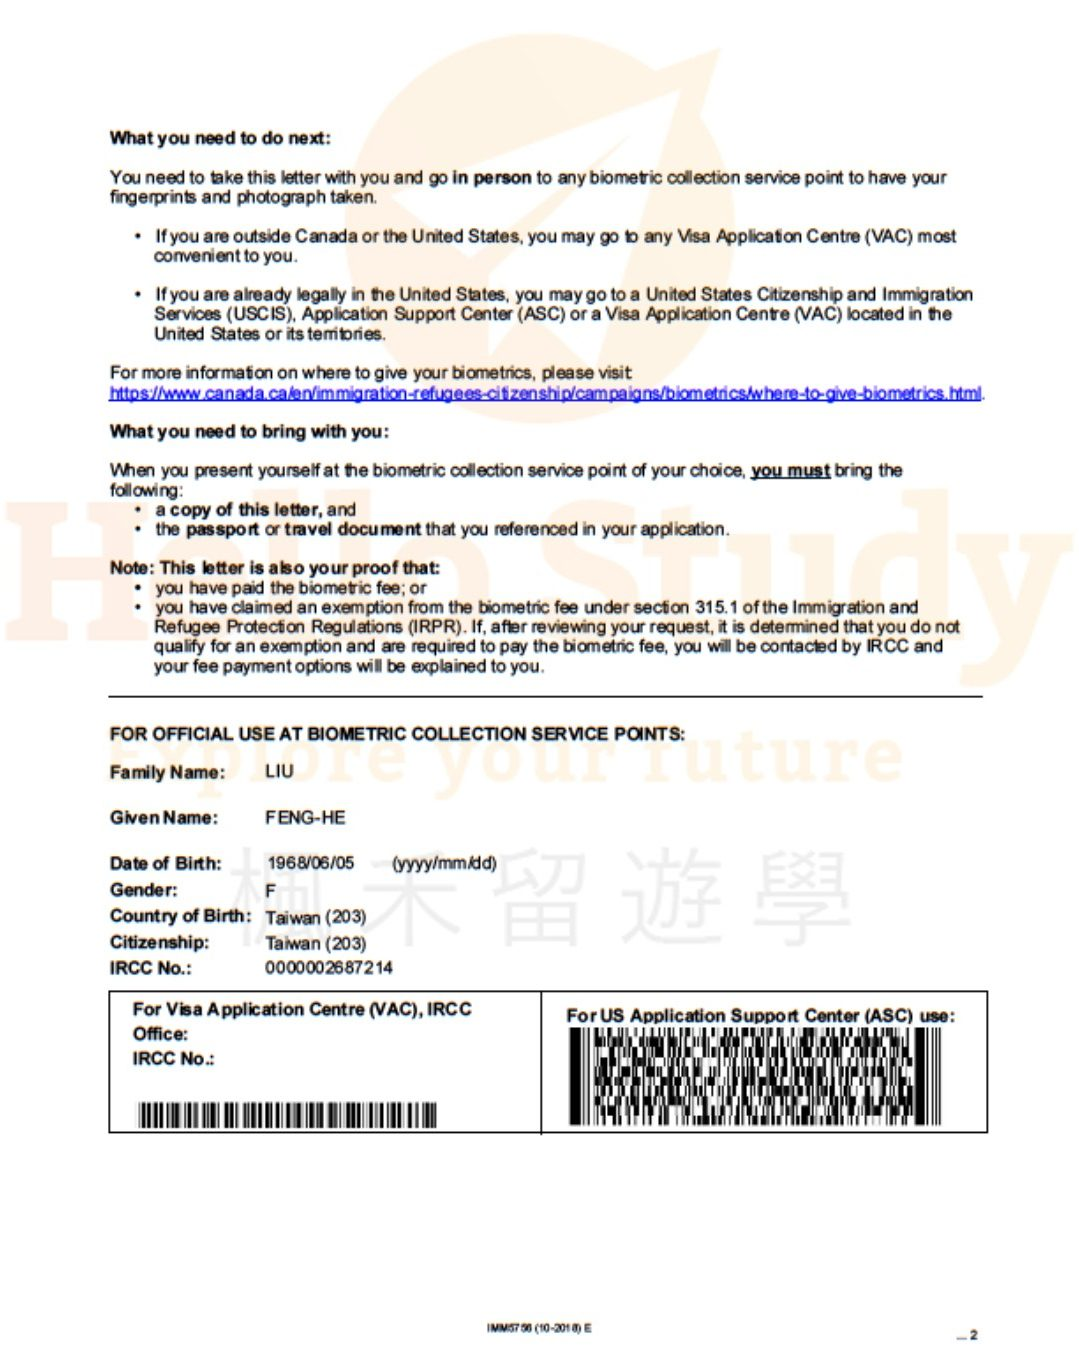 IMM 5756 Biometric Instruction Letter Page 2